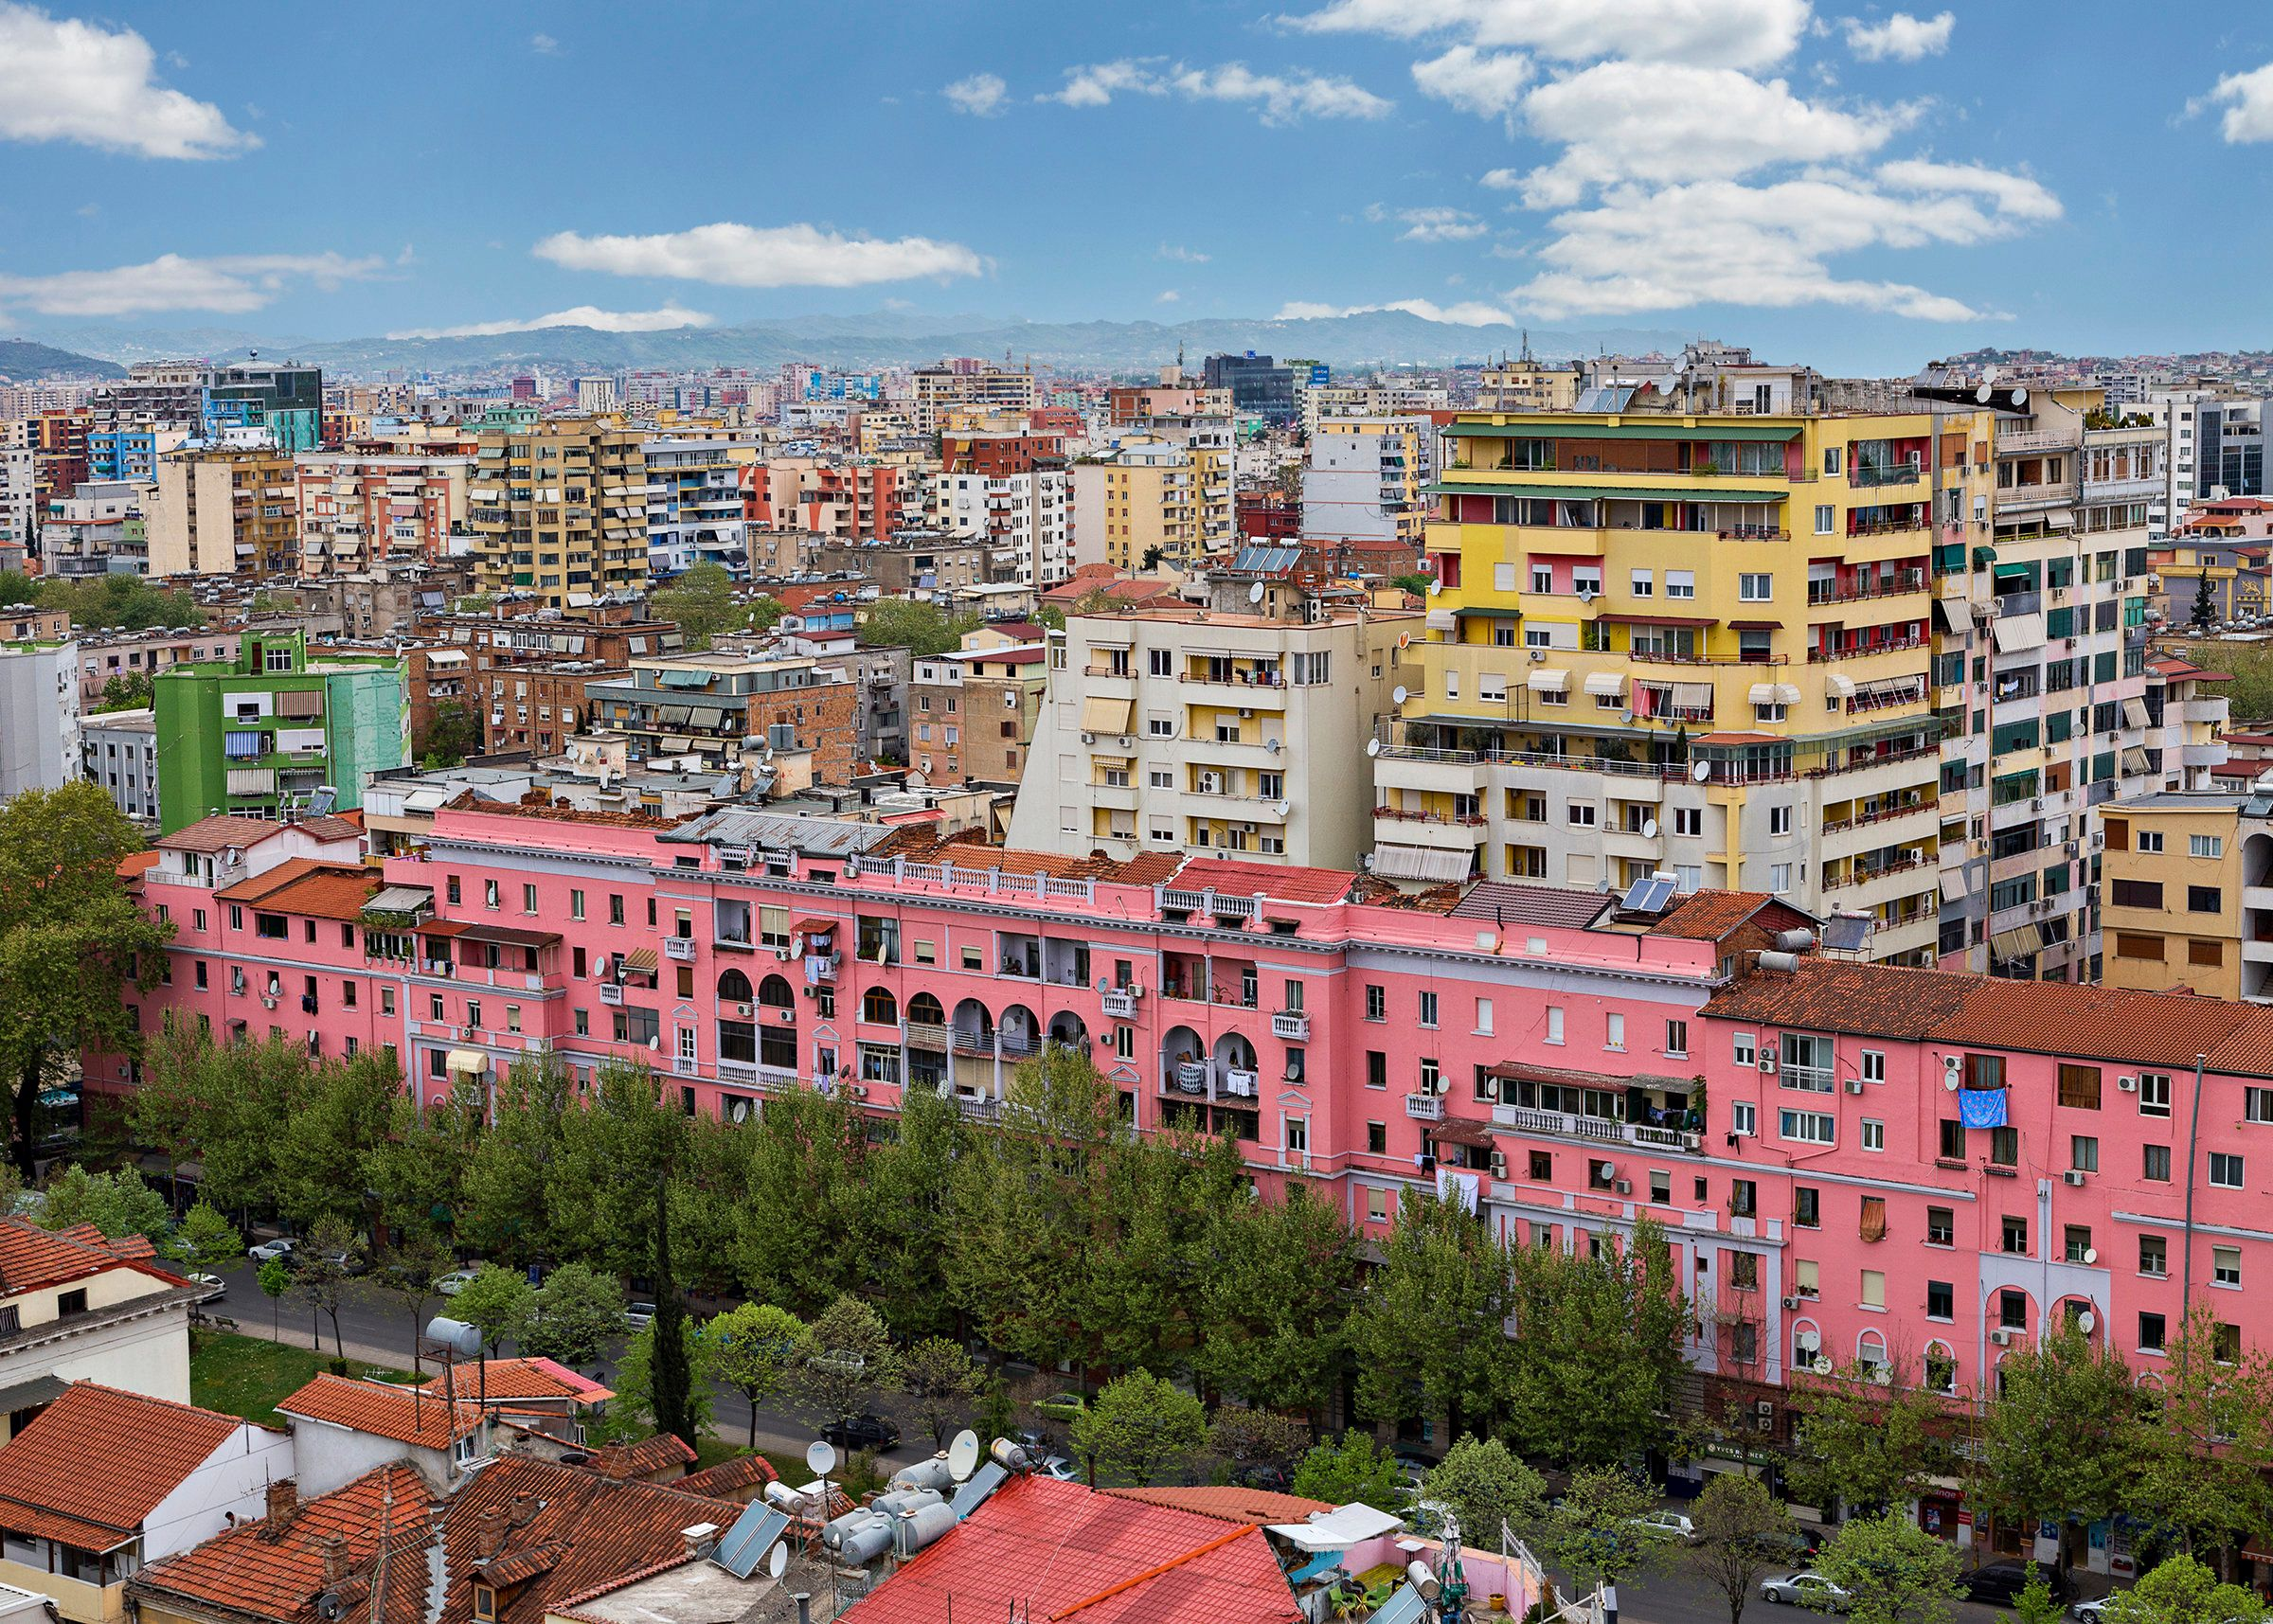 """<a href=""""https://www.lonelyplanet.com/albania/tirana/travel-tips-and-articles/history-and-hedonism-in-tirana/40625c8c-8a11-57"""